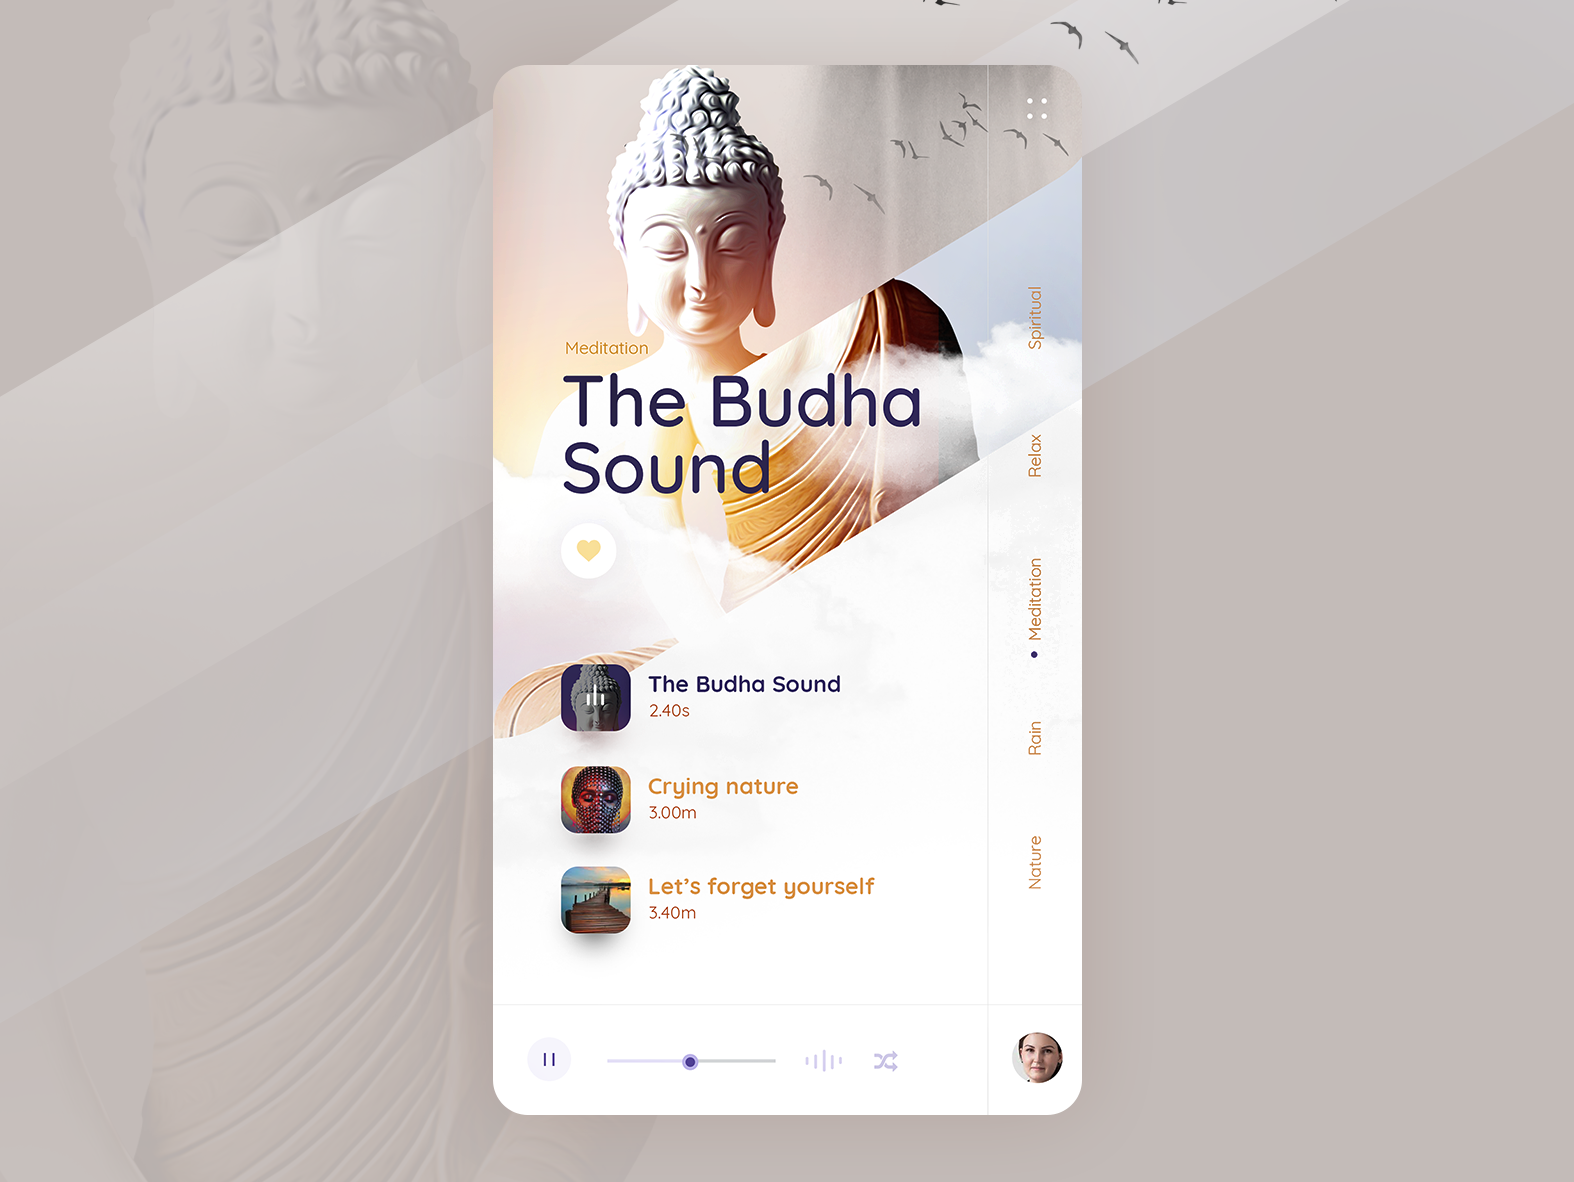 Meditation Music Playlist UI music poster meditationapp meditationui songsui musicappdesigner music player musicapp music player ui animation freebie app appdesigner app designer uxuidesigner freelance designer clean design